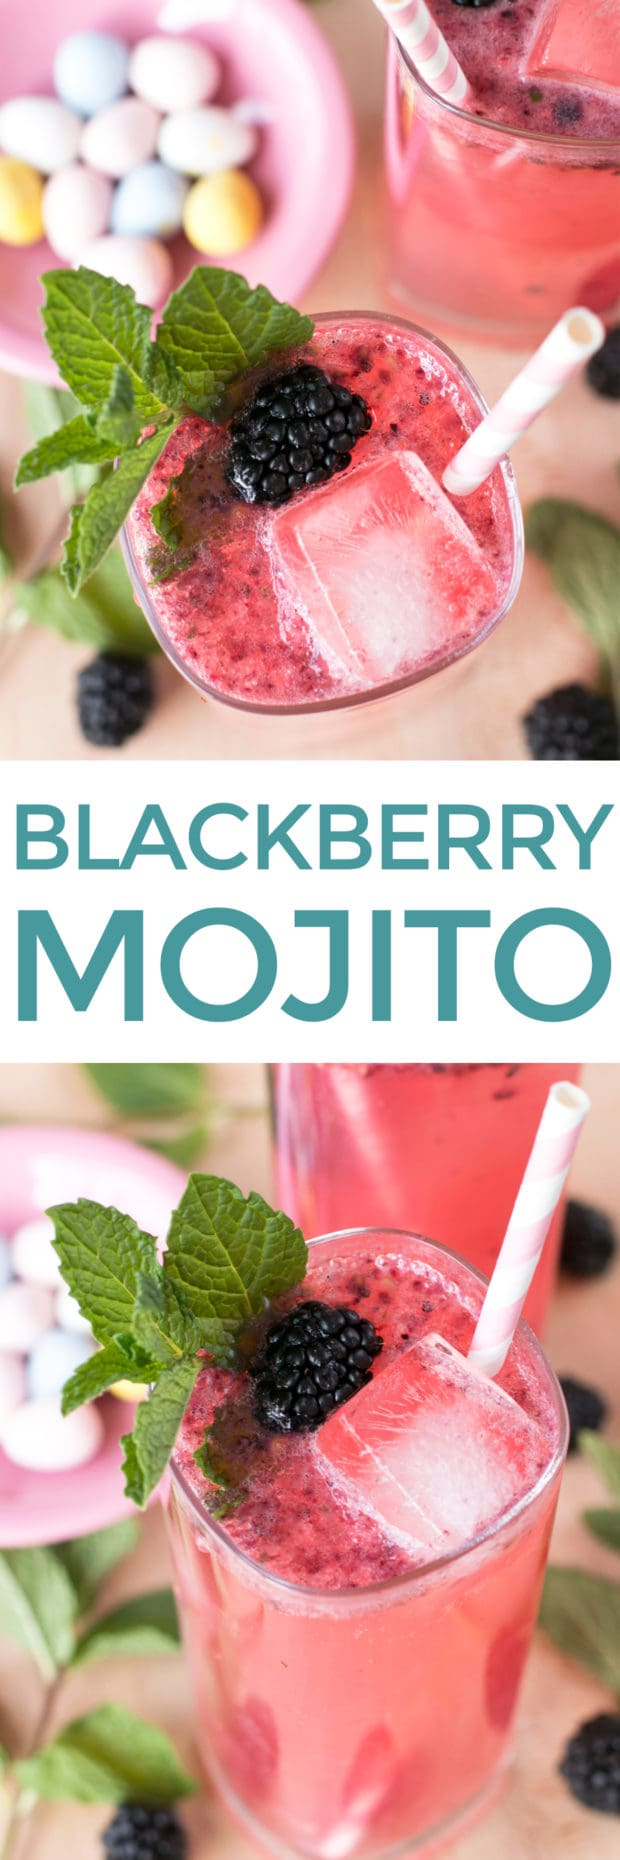 Blackberry Mojito | cakenknife.com #cocktail #rum #spring #summer